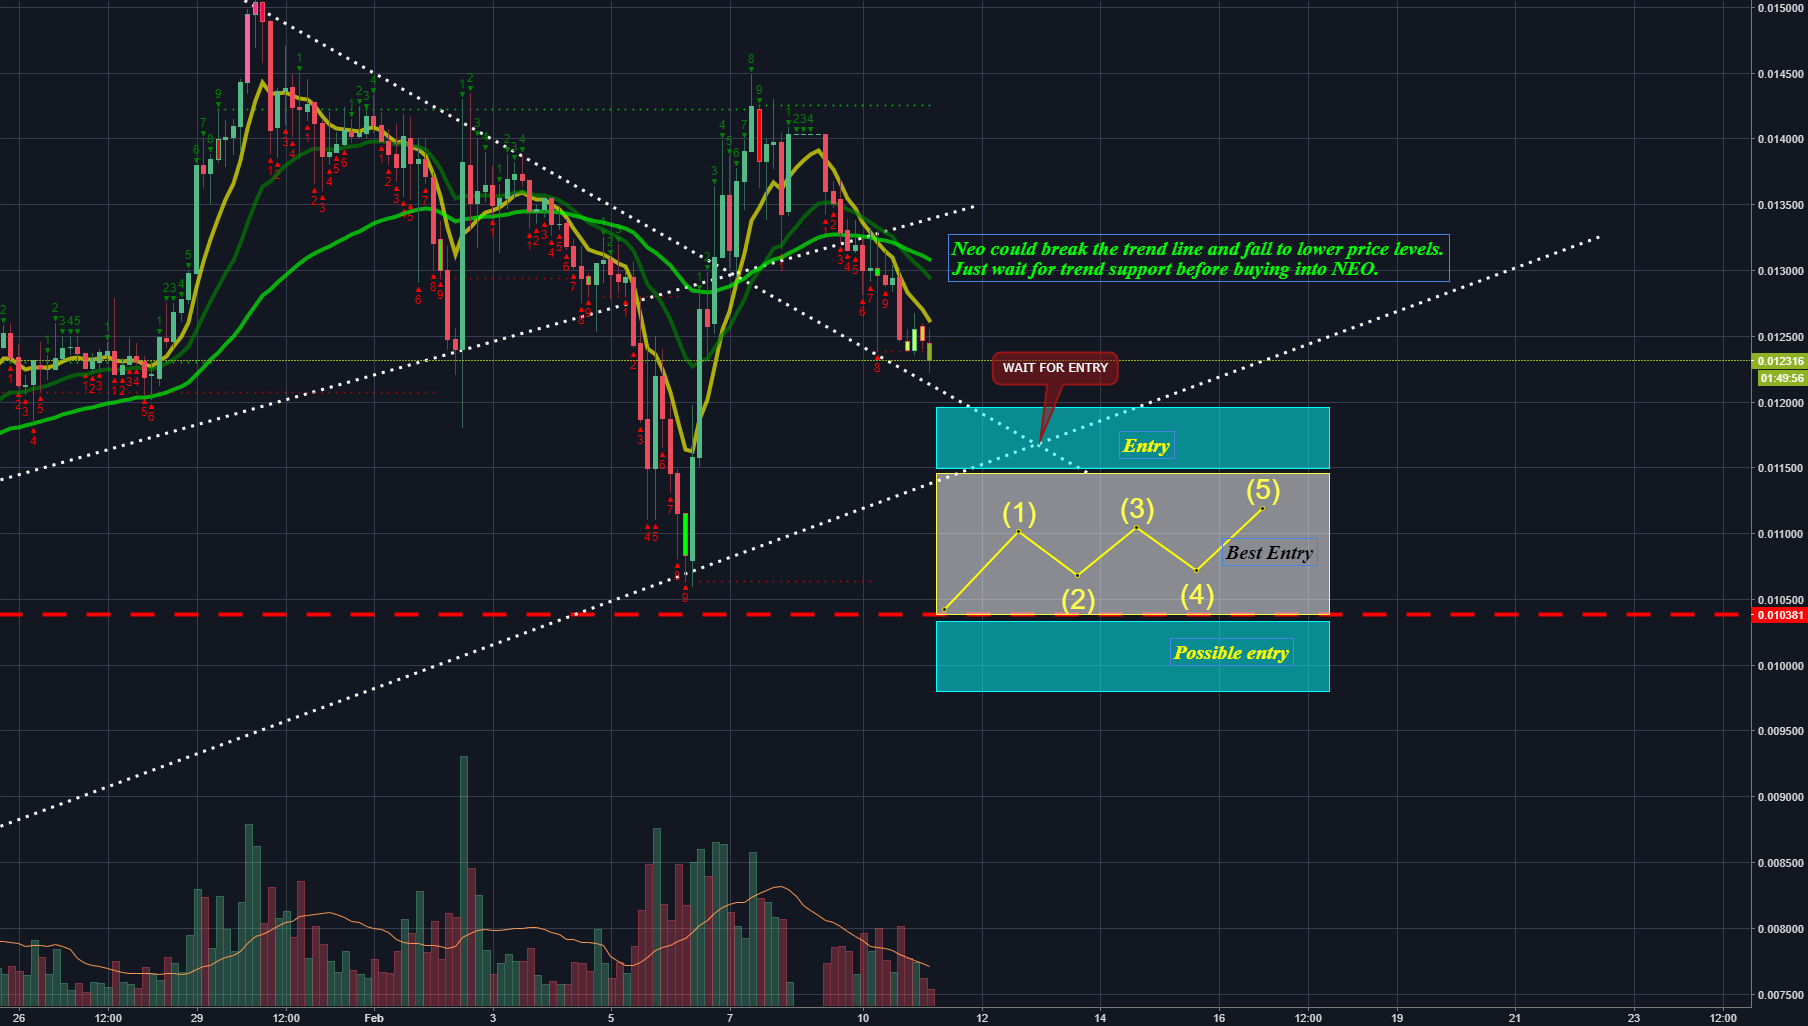 NEO and possible entries.